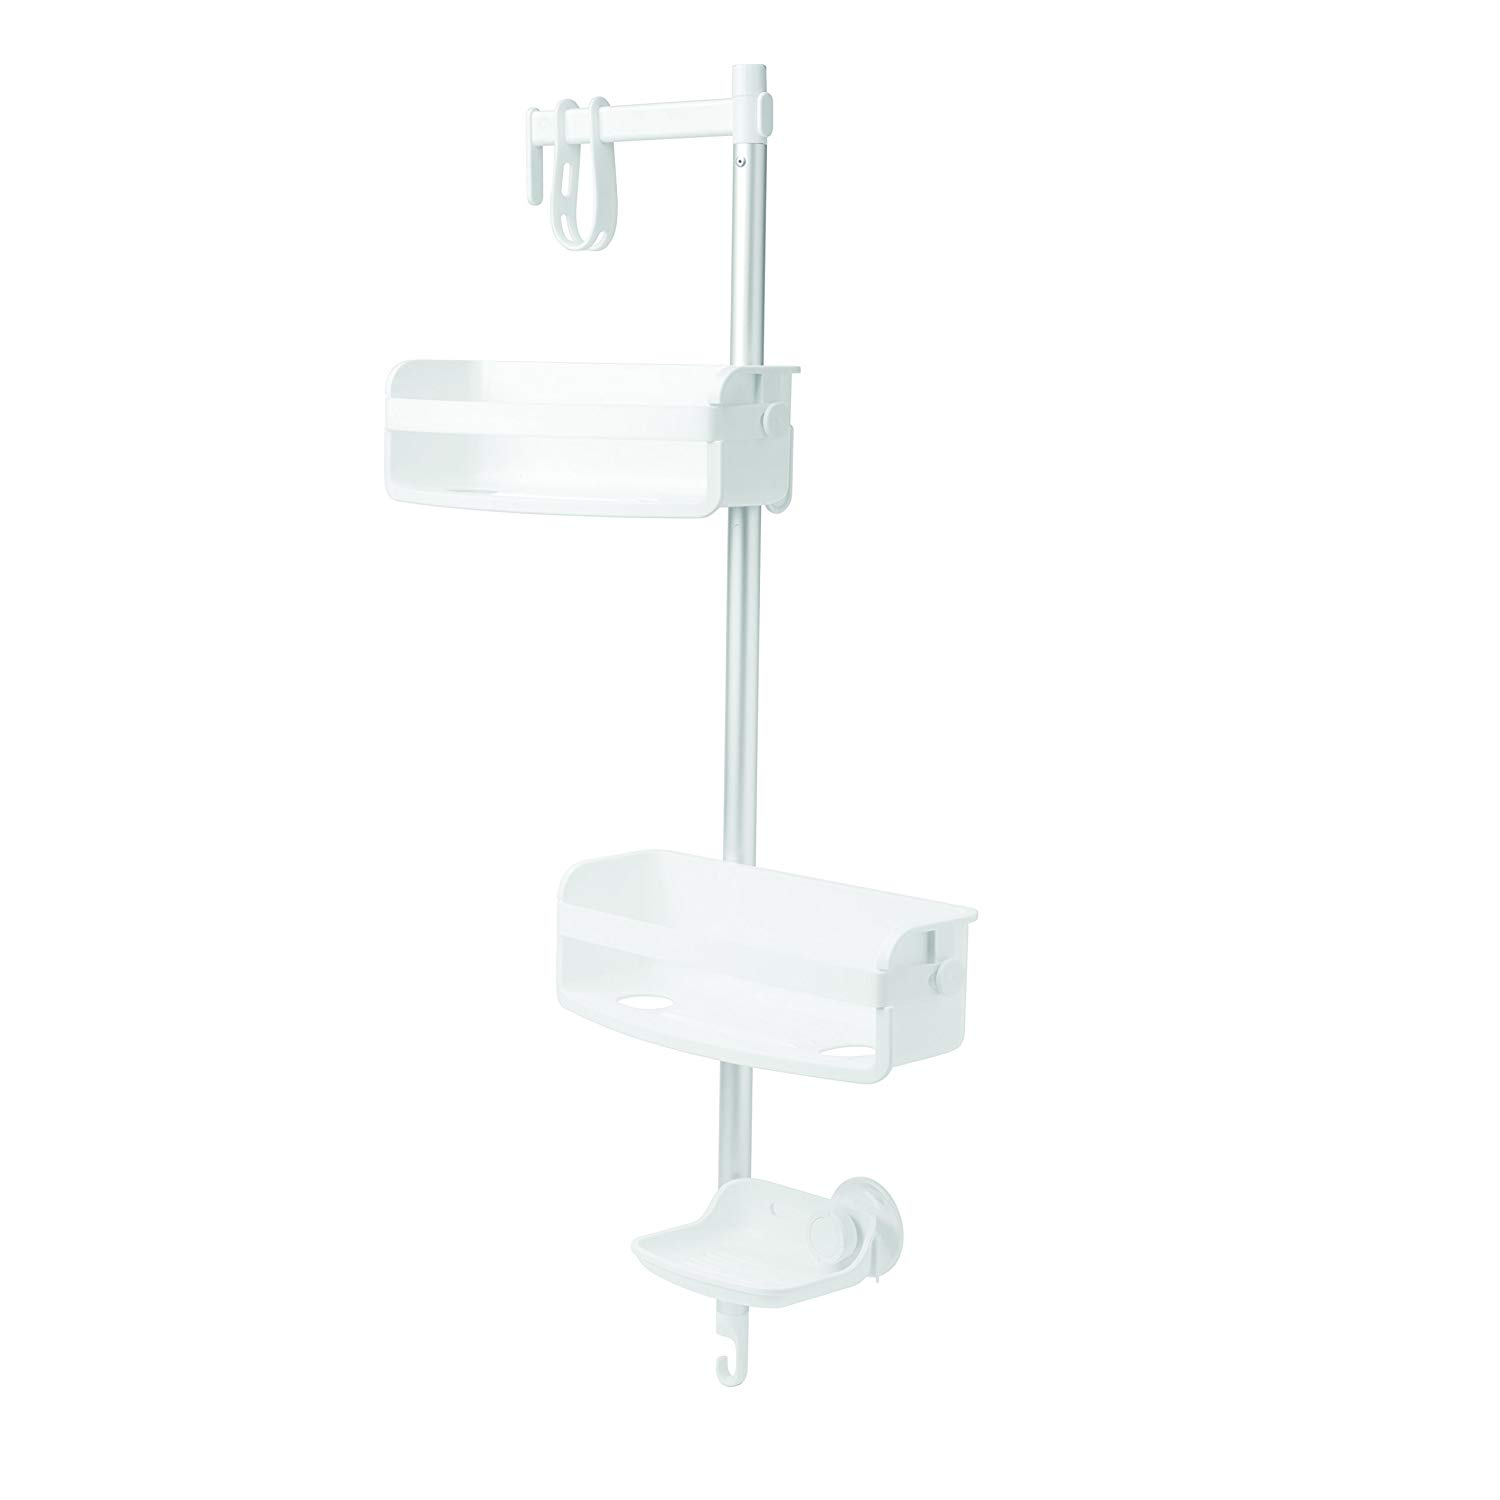 Umbra Flipside Flex Pole Shower Caddy